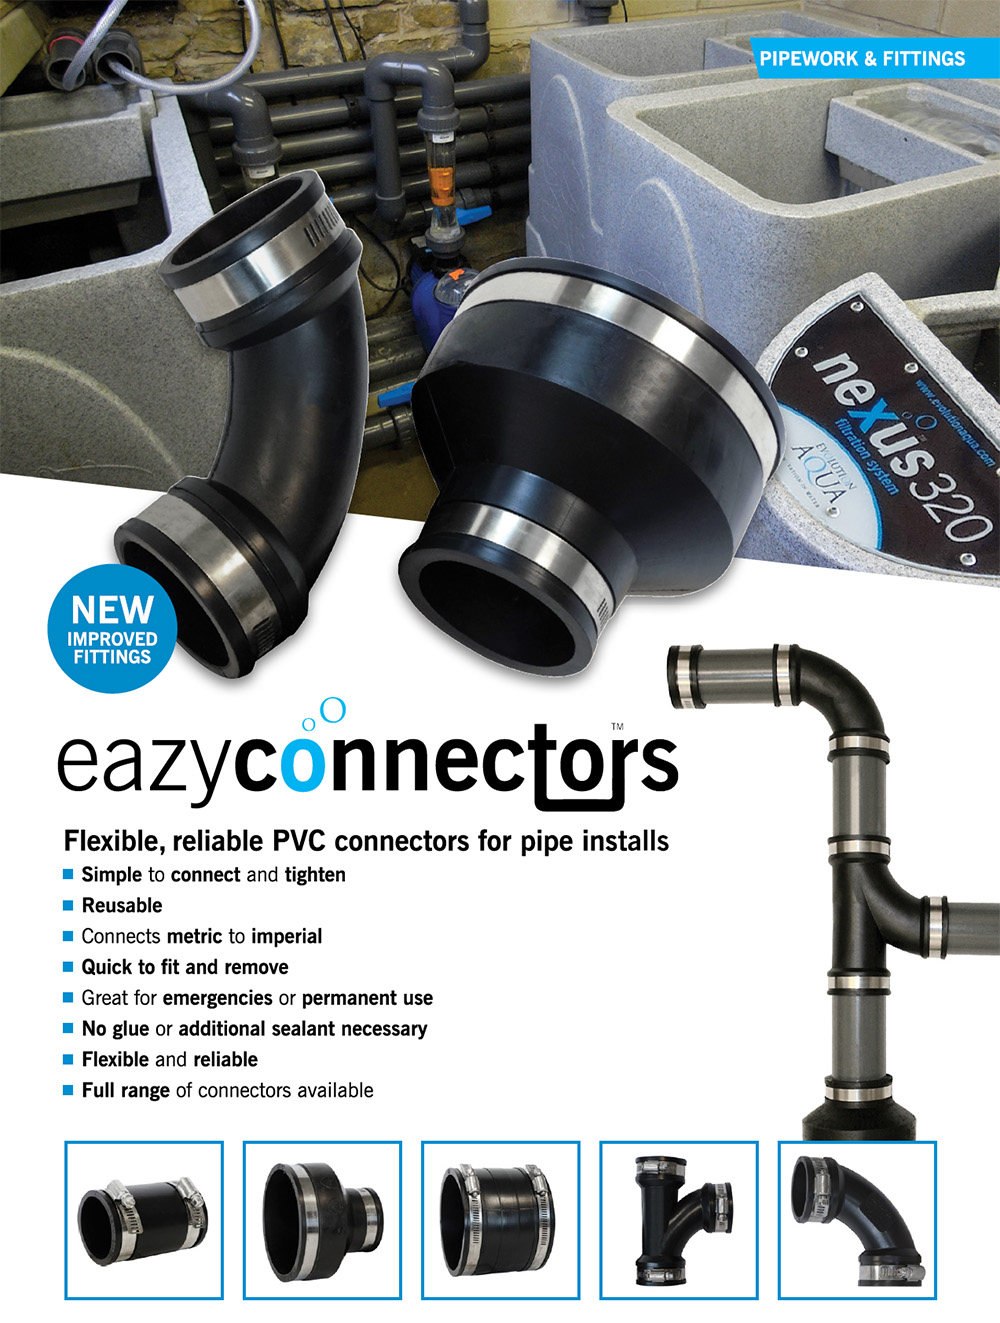 Evolution Aqua Eazy Connectors, epdm spojky čehokoliv